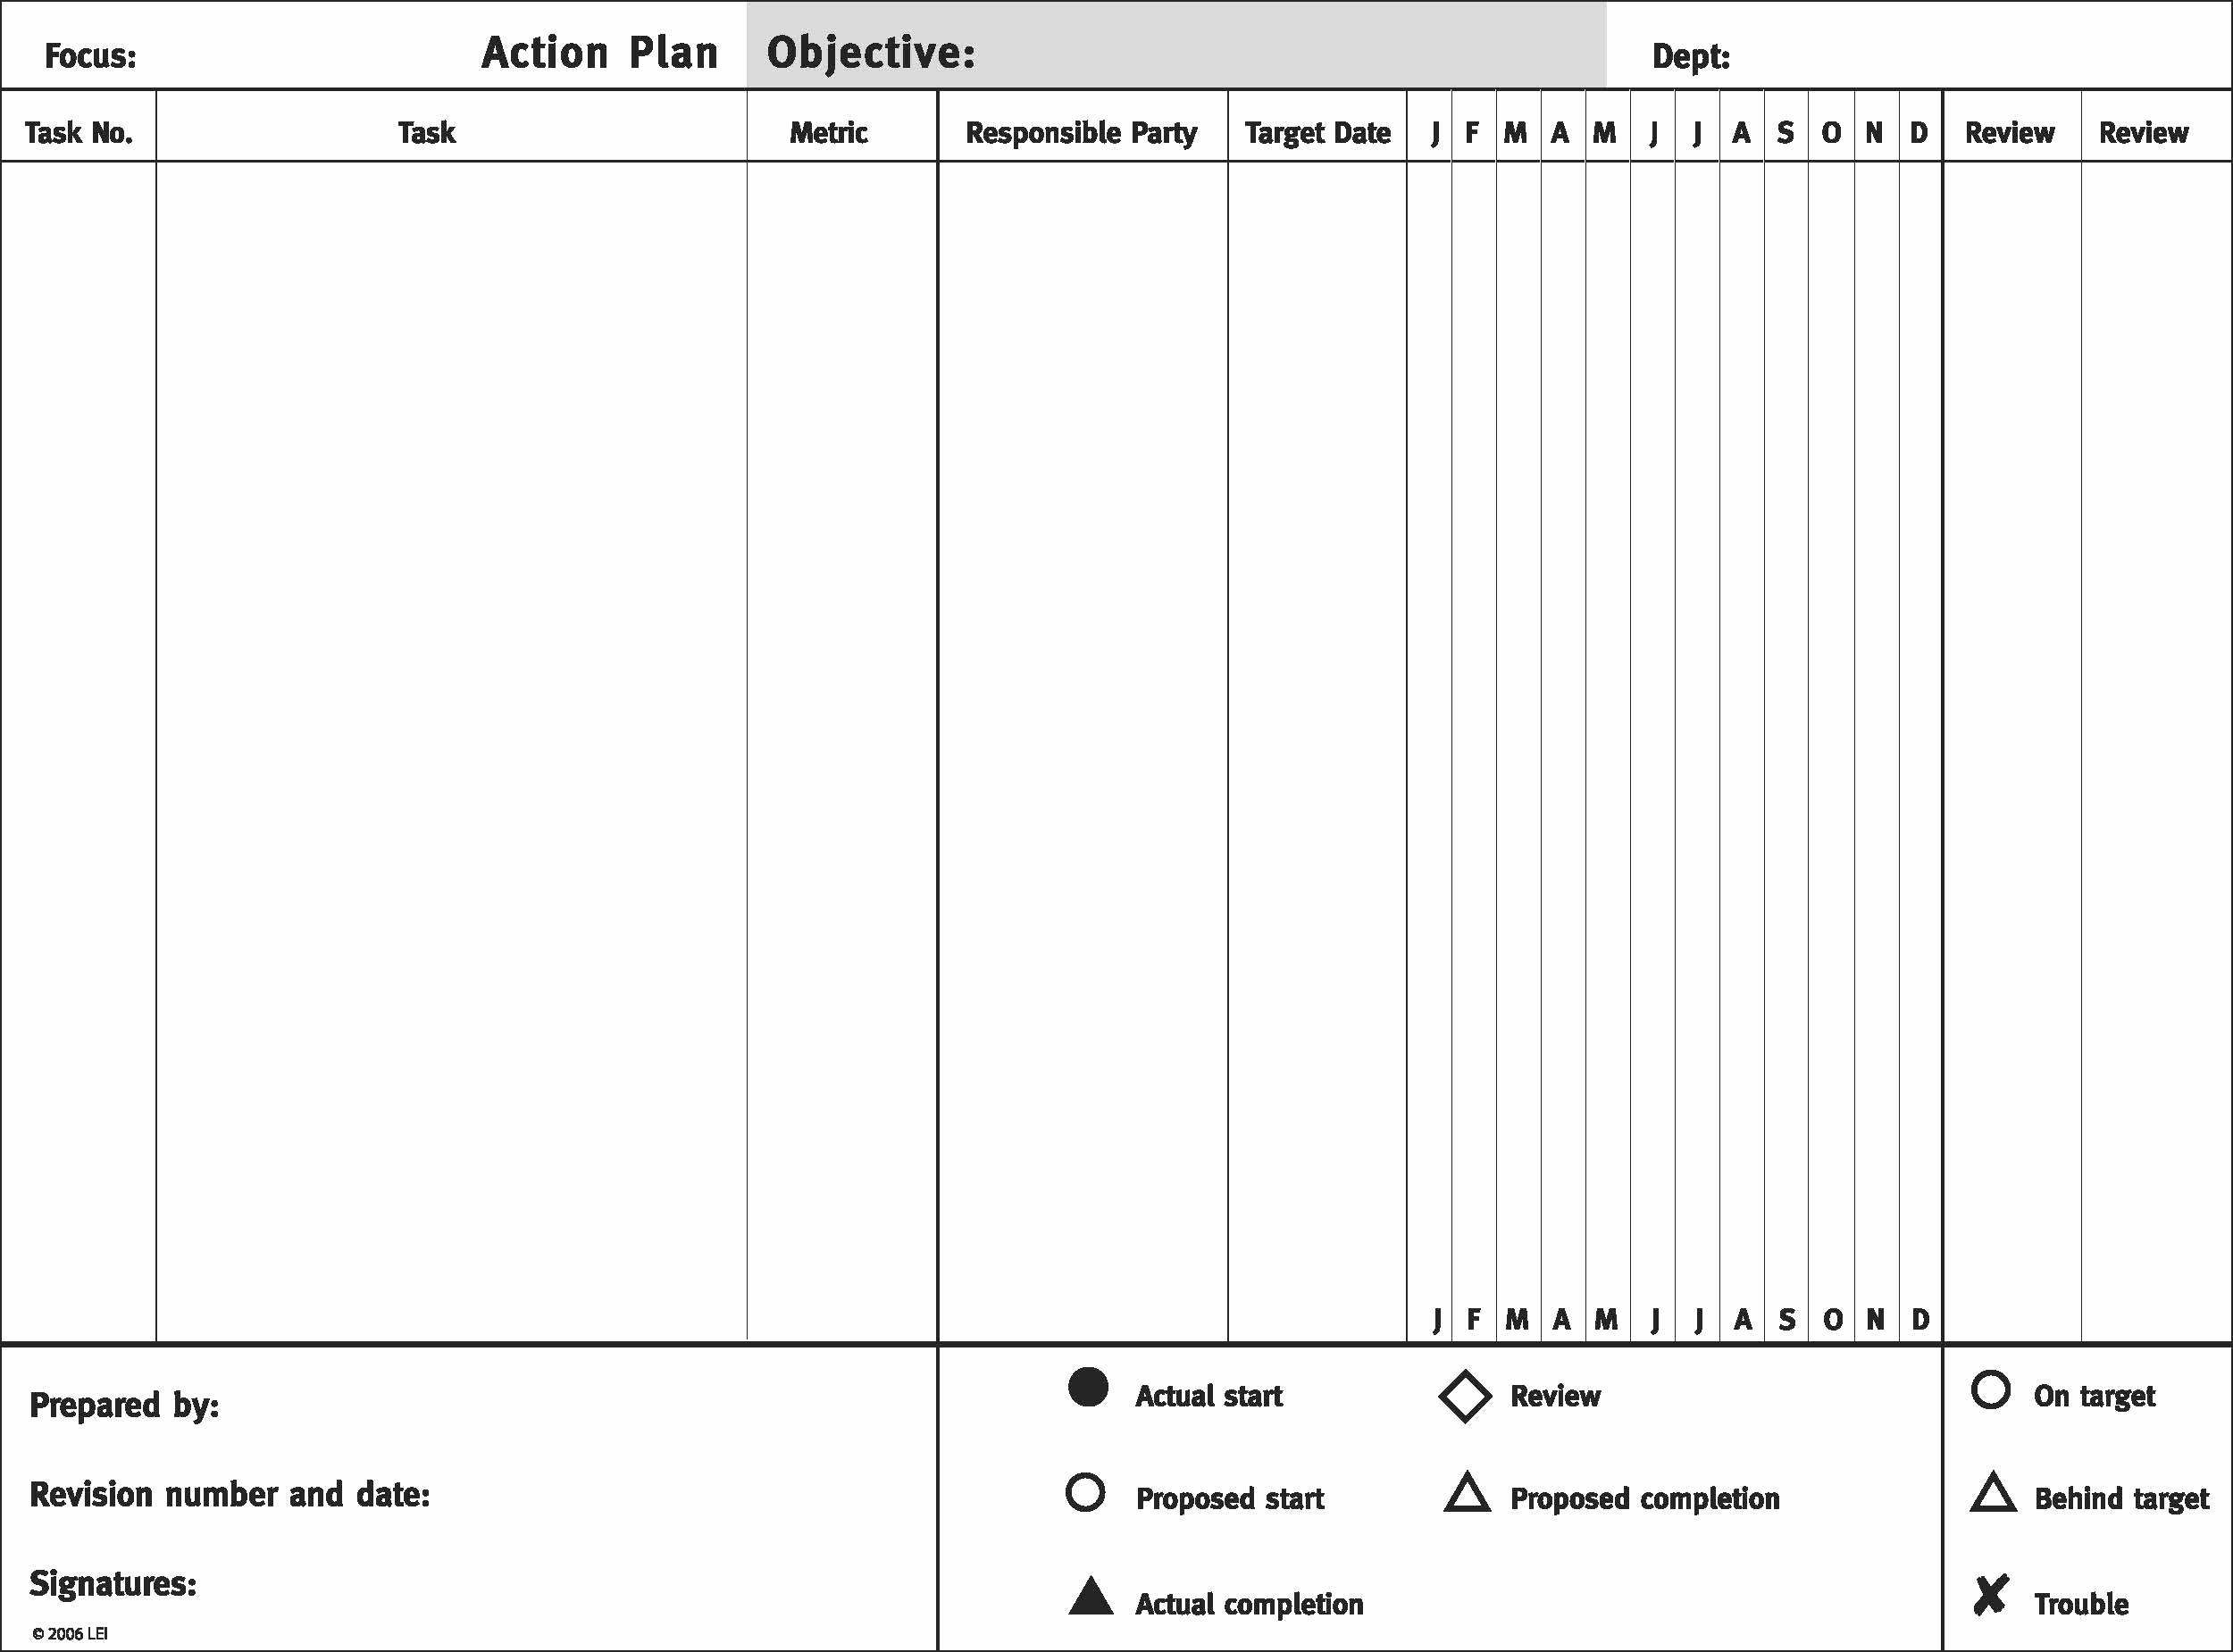 Action Plan Template Education Fresh A3 Action Plan form From Getting the Right Things Done